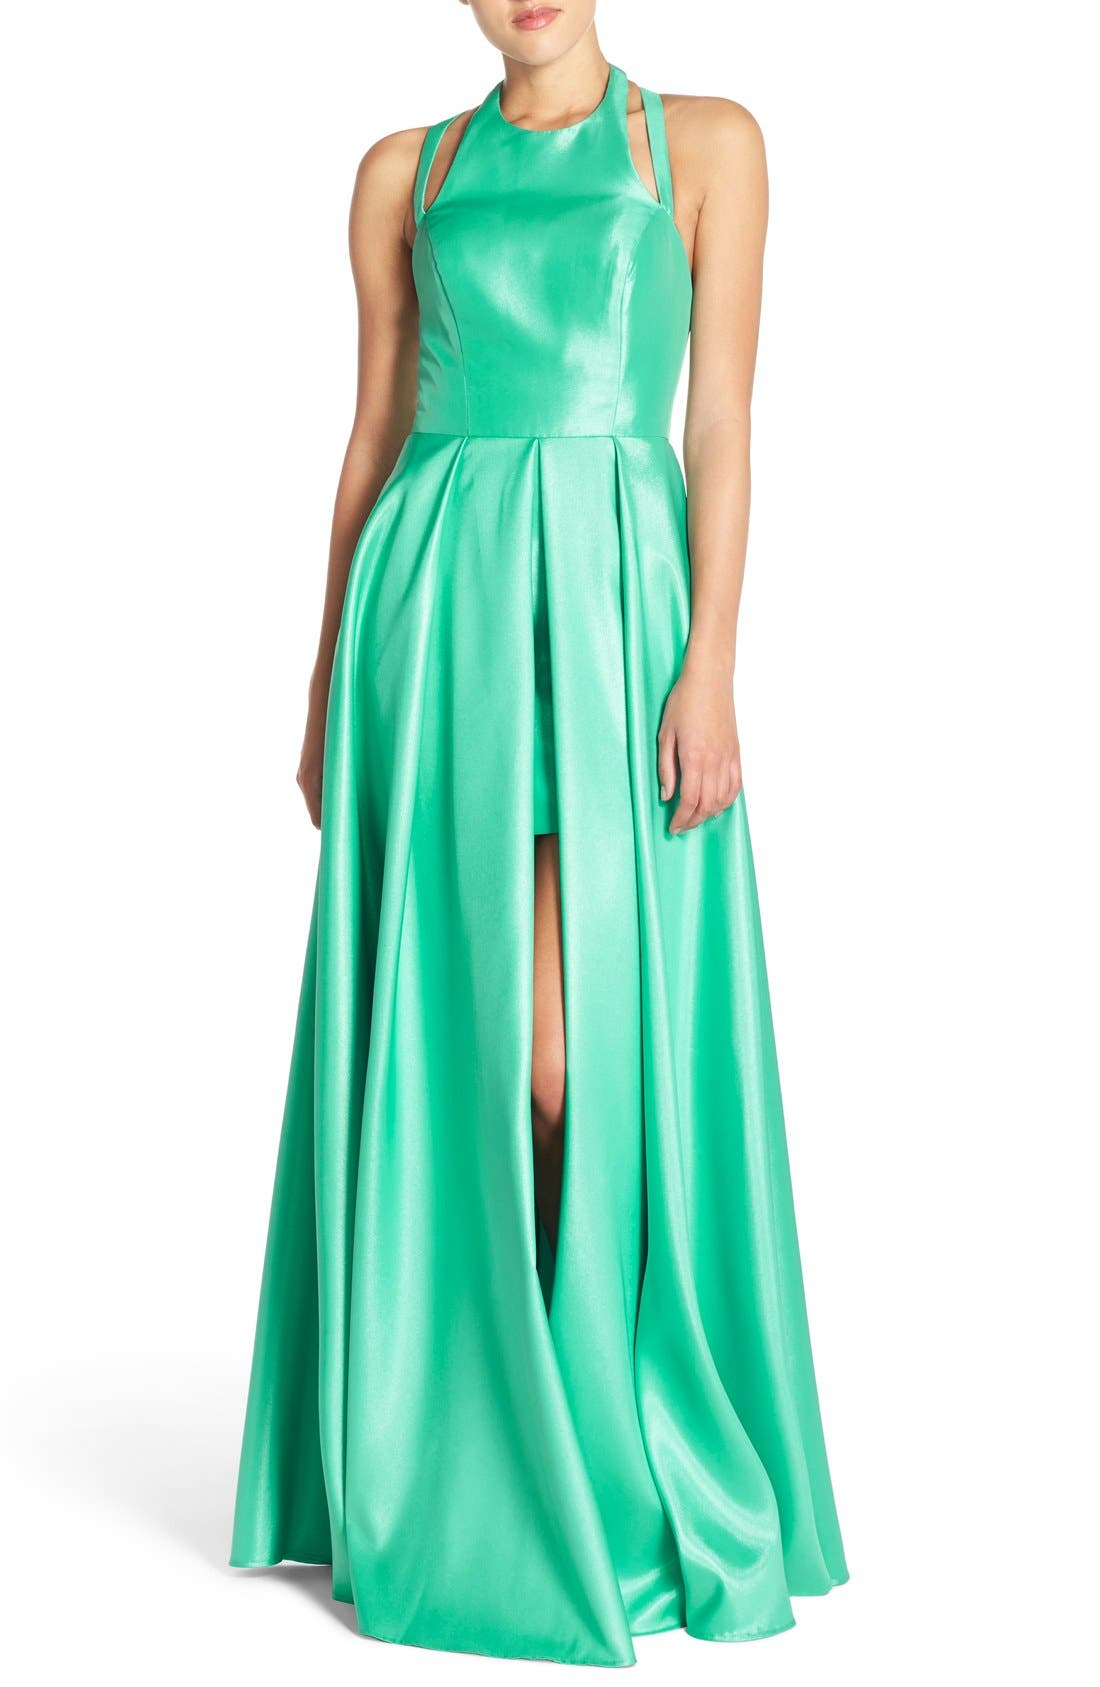 Shimmer Satin Halter Gown with Underskirt,                             Main thumbnail 1, color,                             439